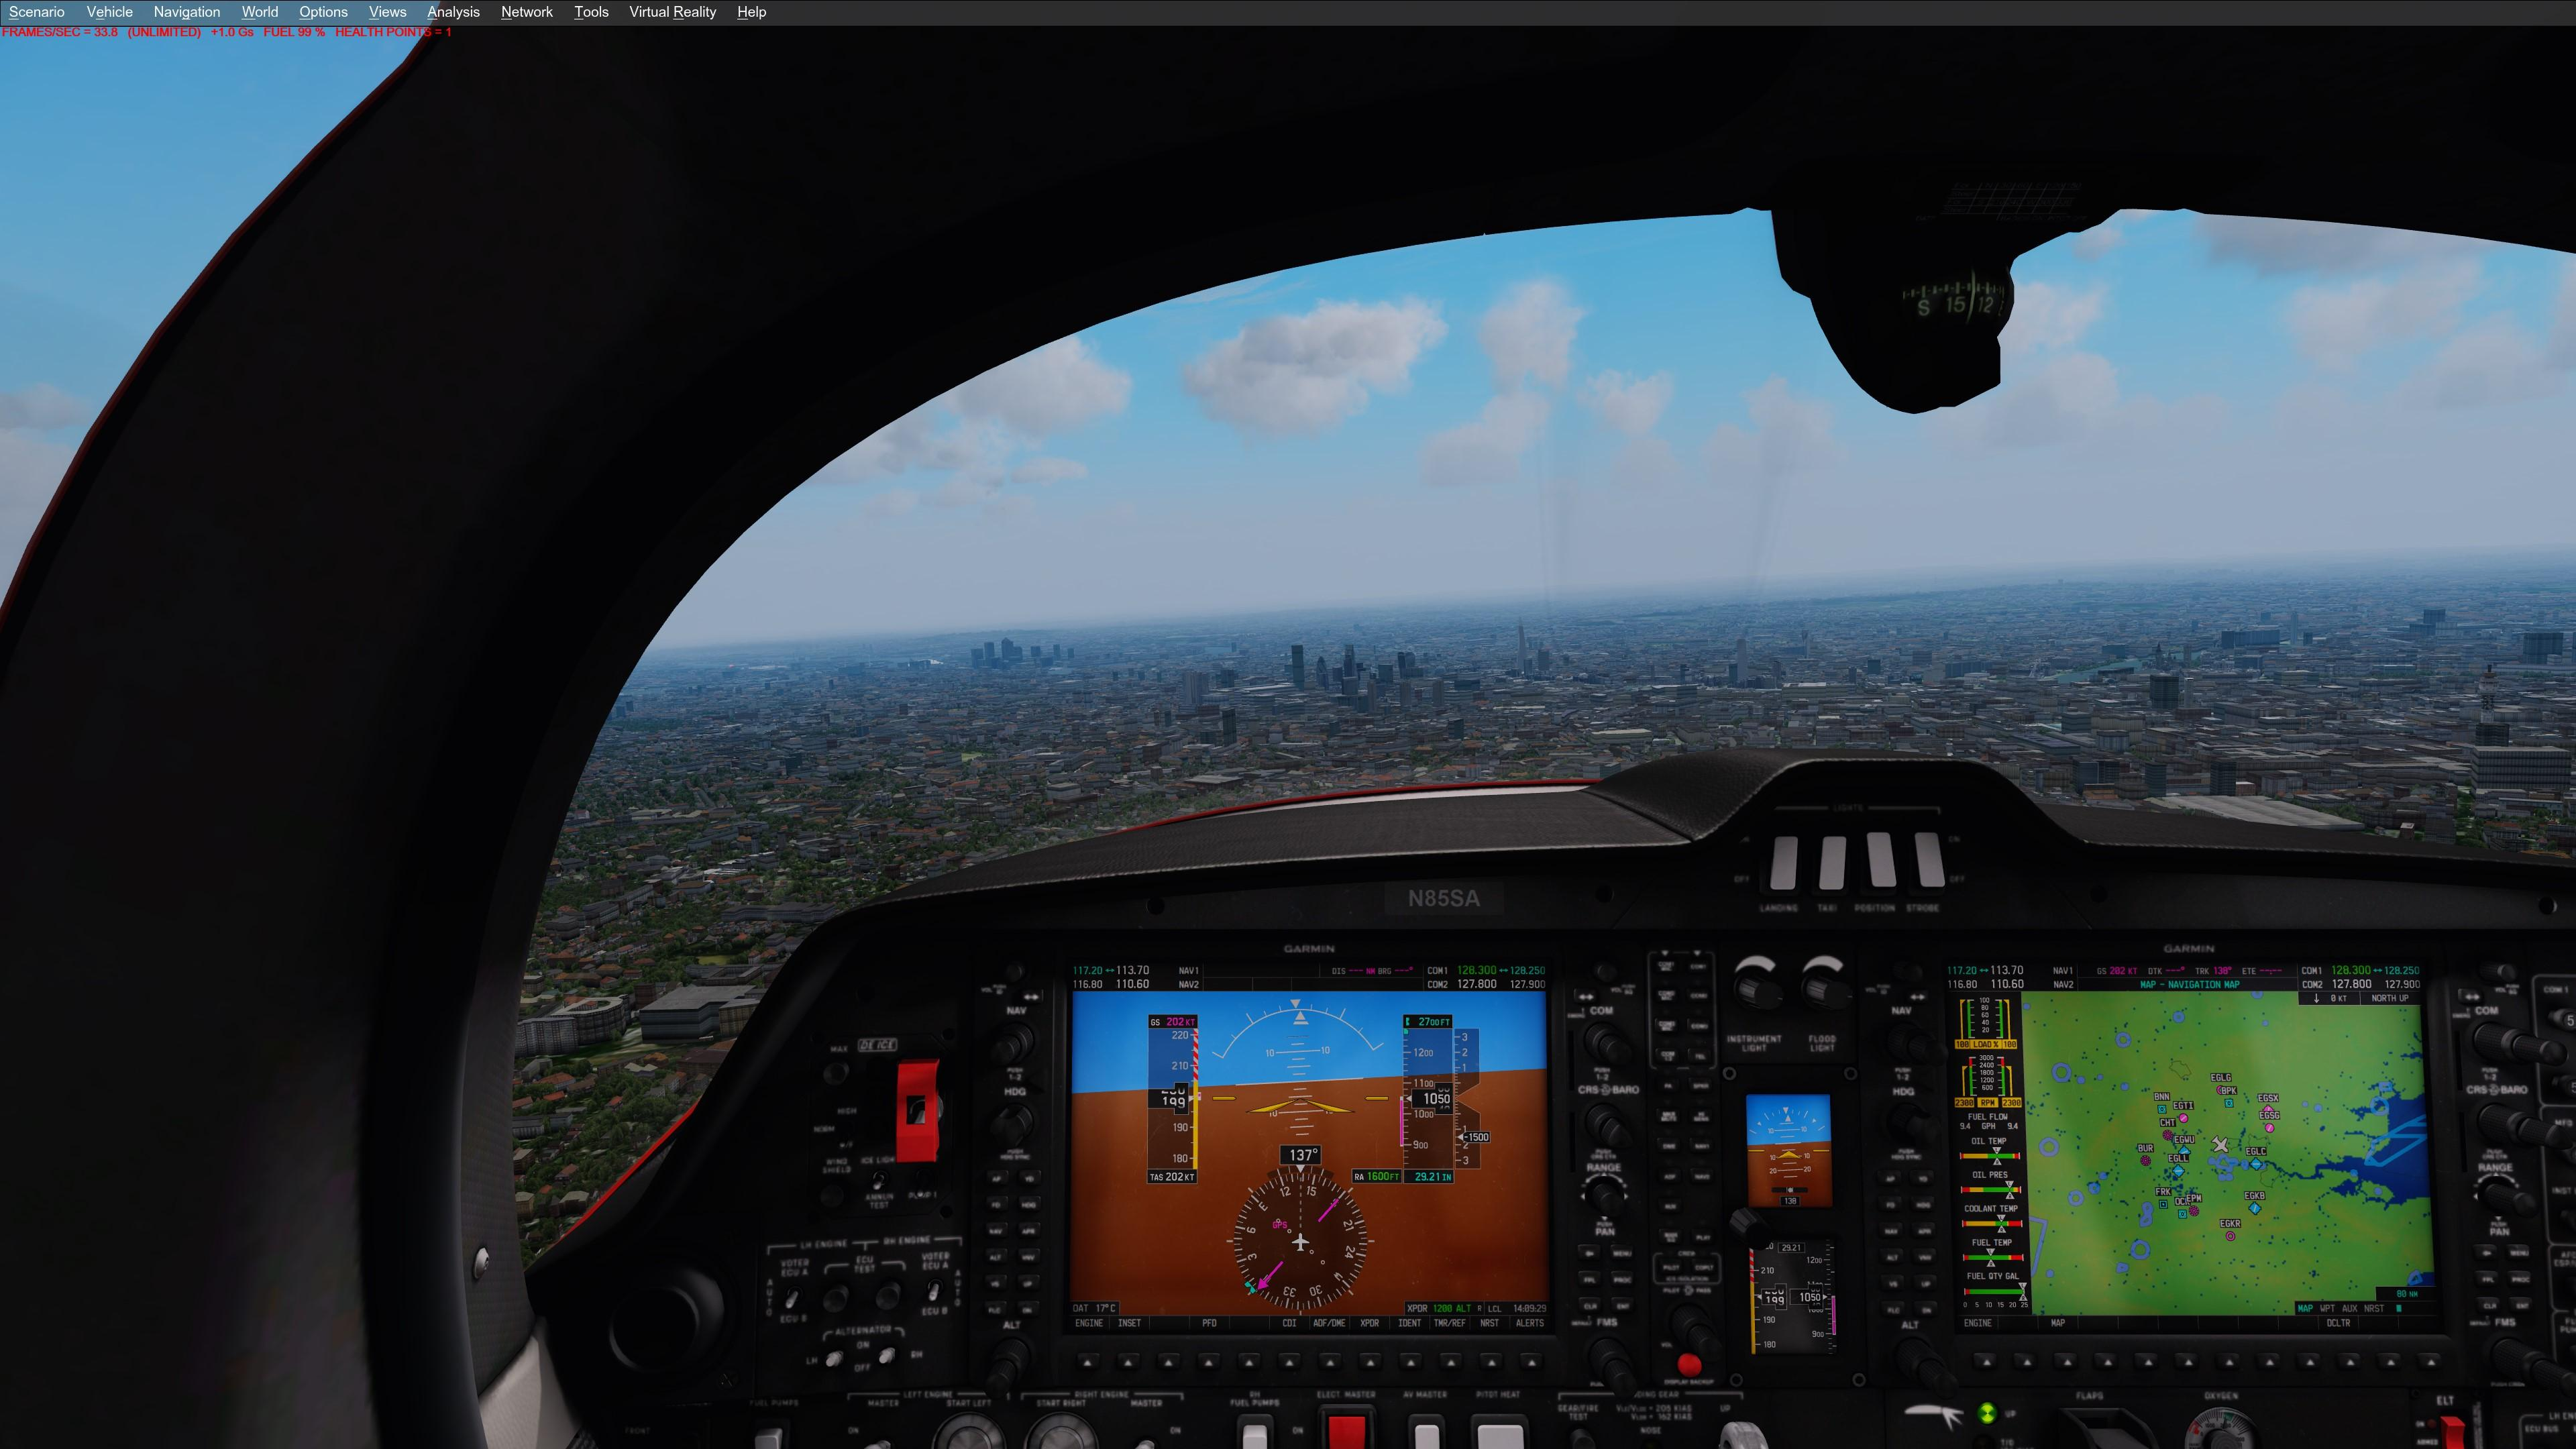 Orbx True Earth England South - General Discussion - no